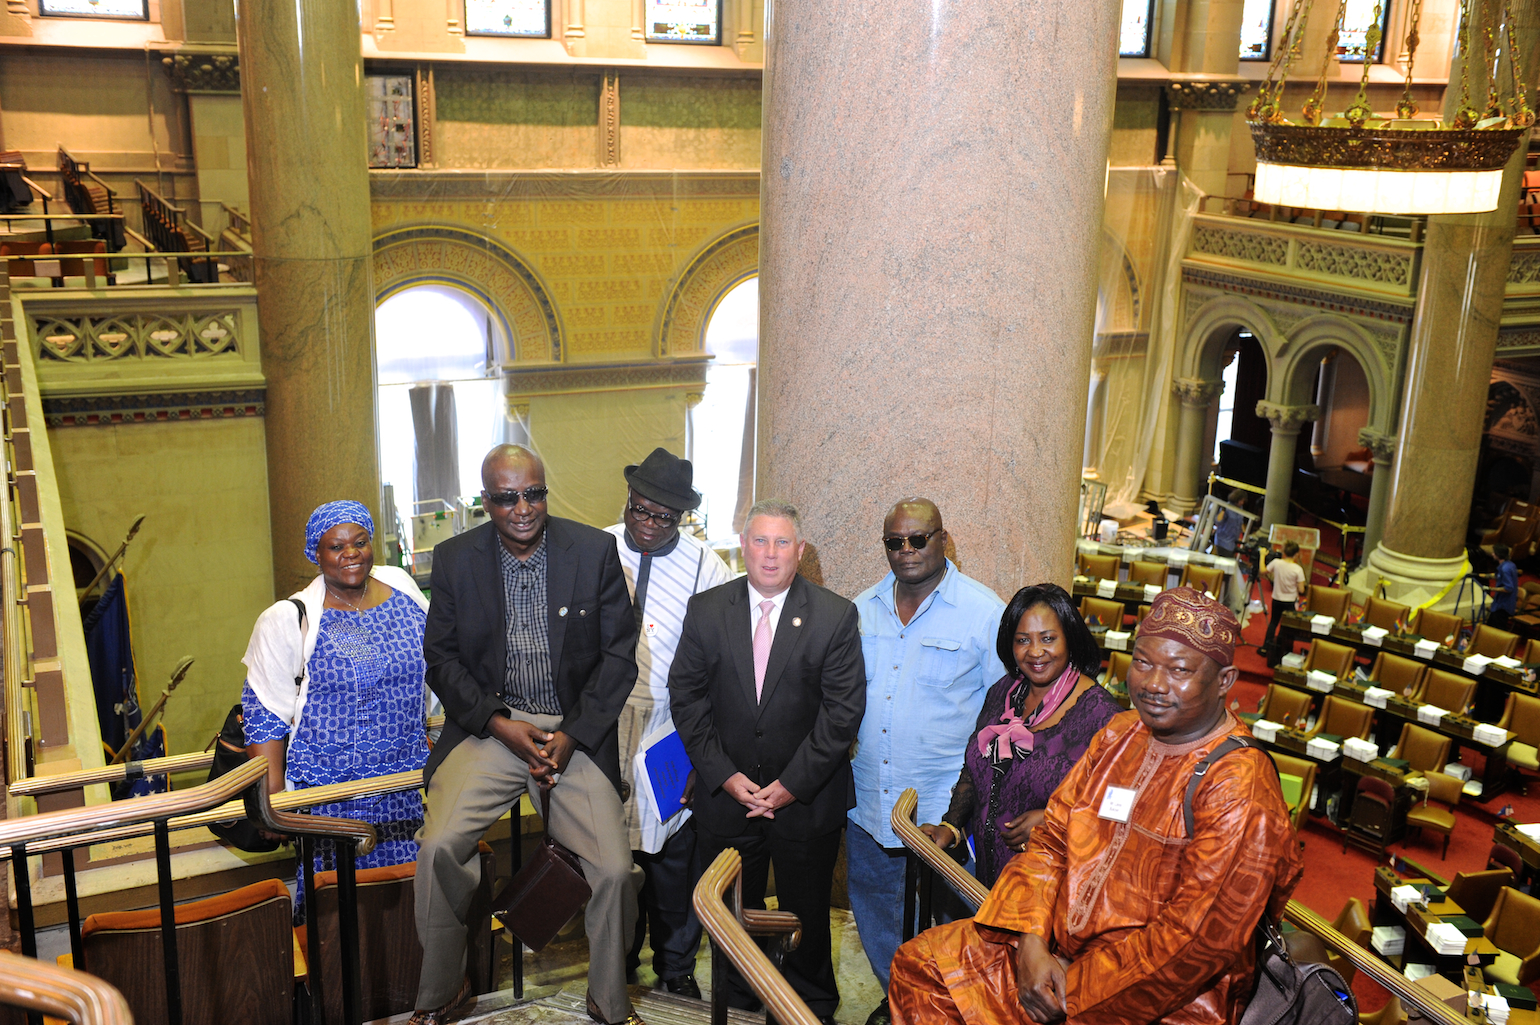 Assemblymember McDonald welcomes Nigerian delegates from the International Center of the Capital Region to the Assembly Chambers.